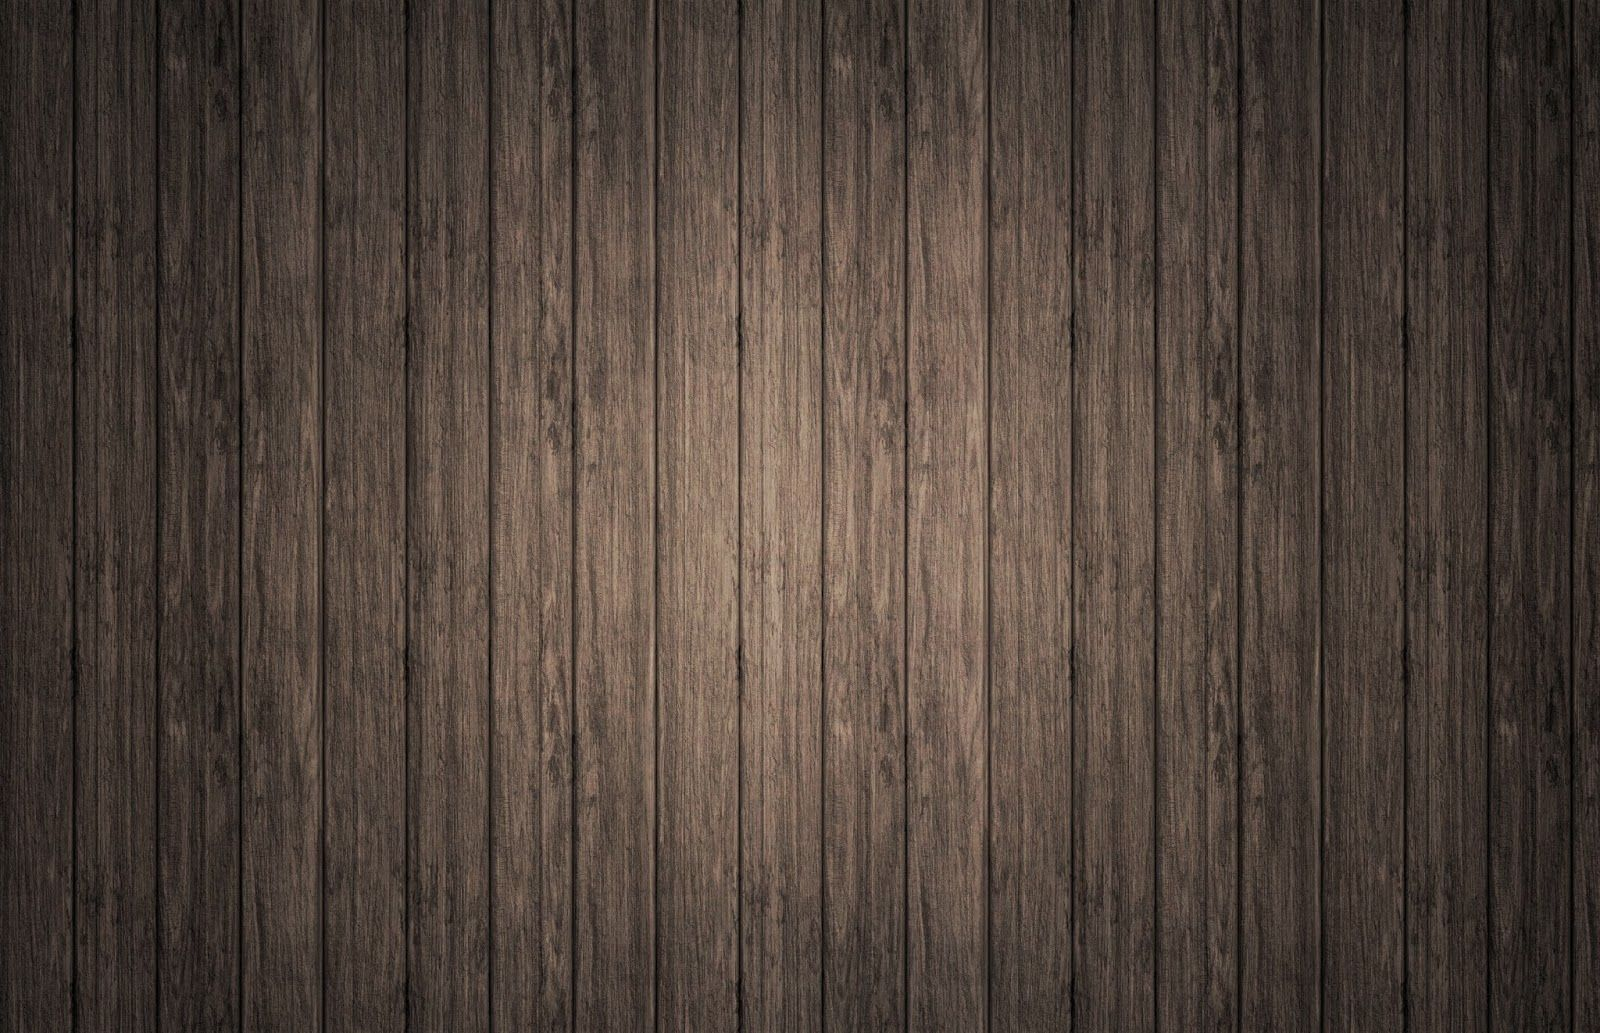 Wooden-background-texture-pattern-images-for-website-HD-template ...